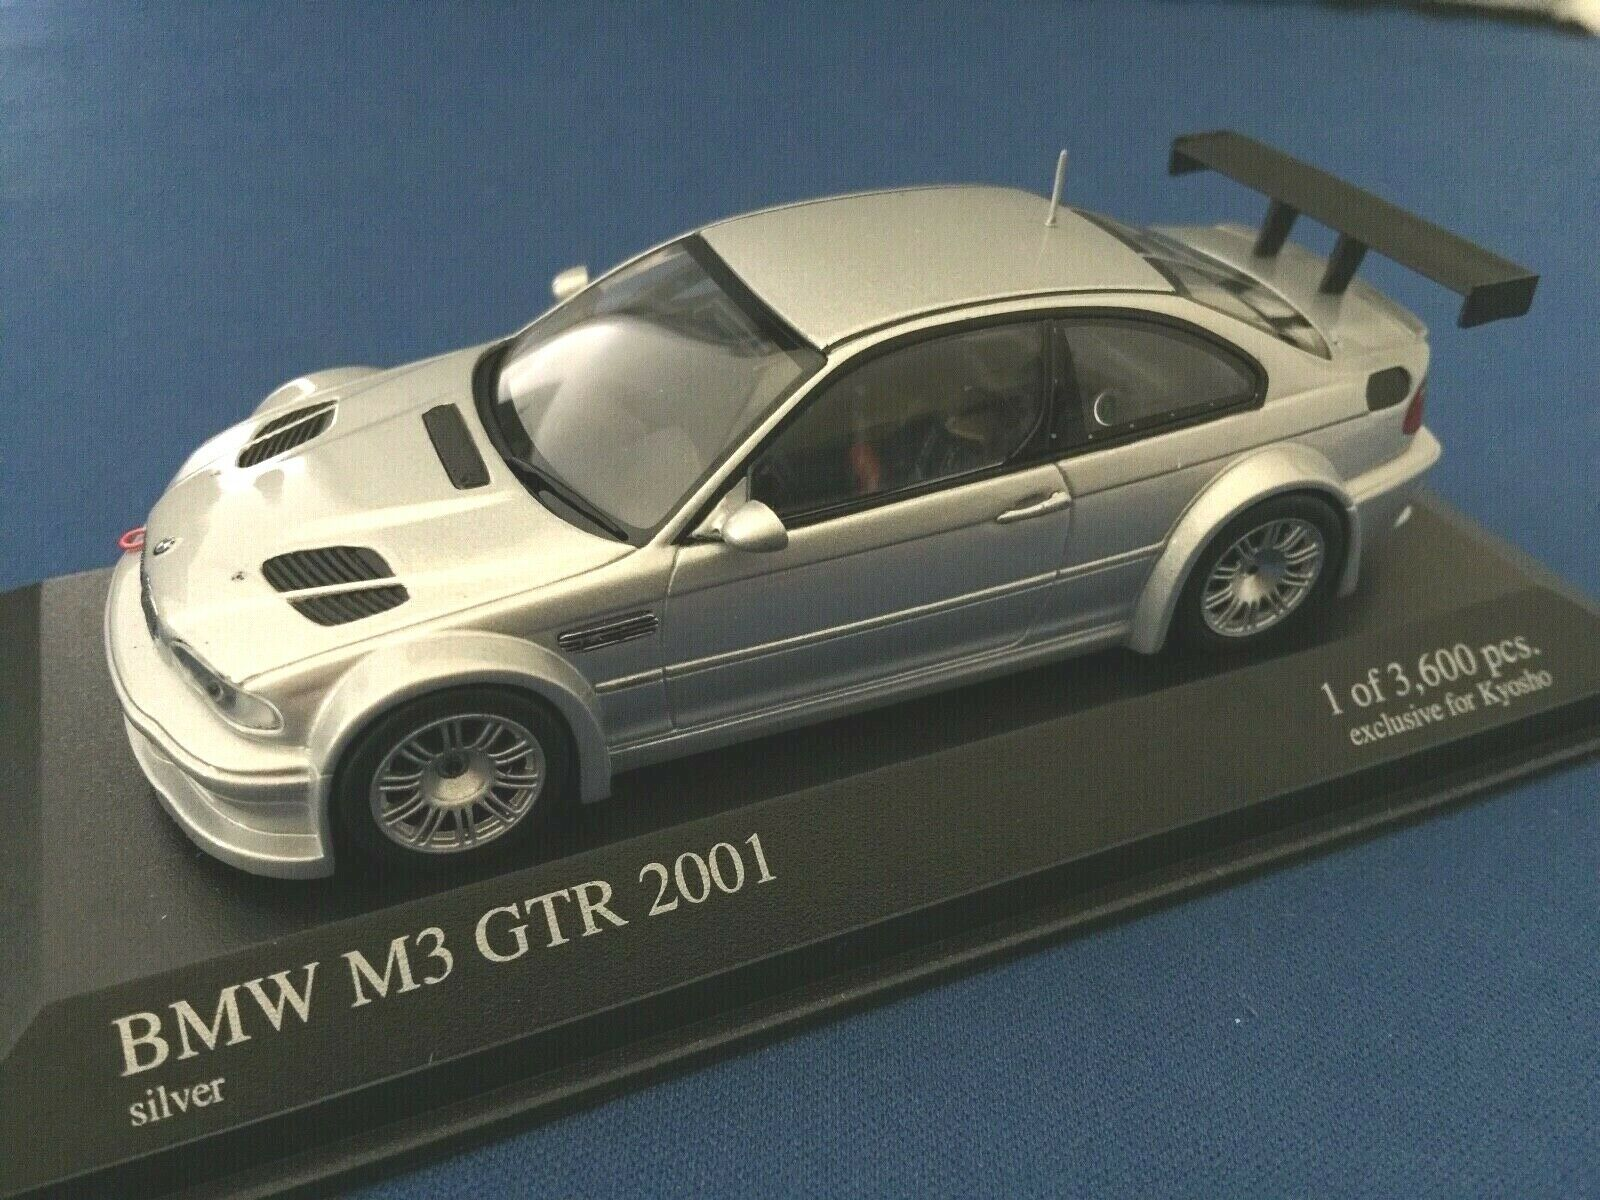 1 43 Minichamps 403012193 Bmw M3 Gtr E46 Matt Black For Kyosho For Sale Online Ebay